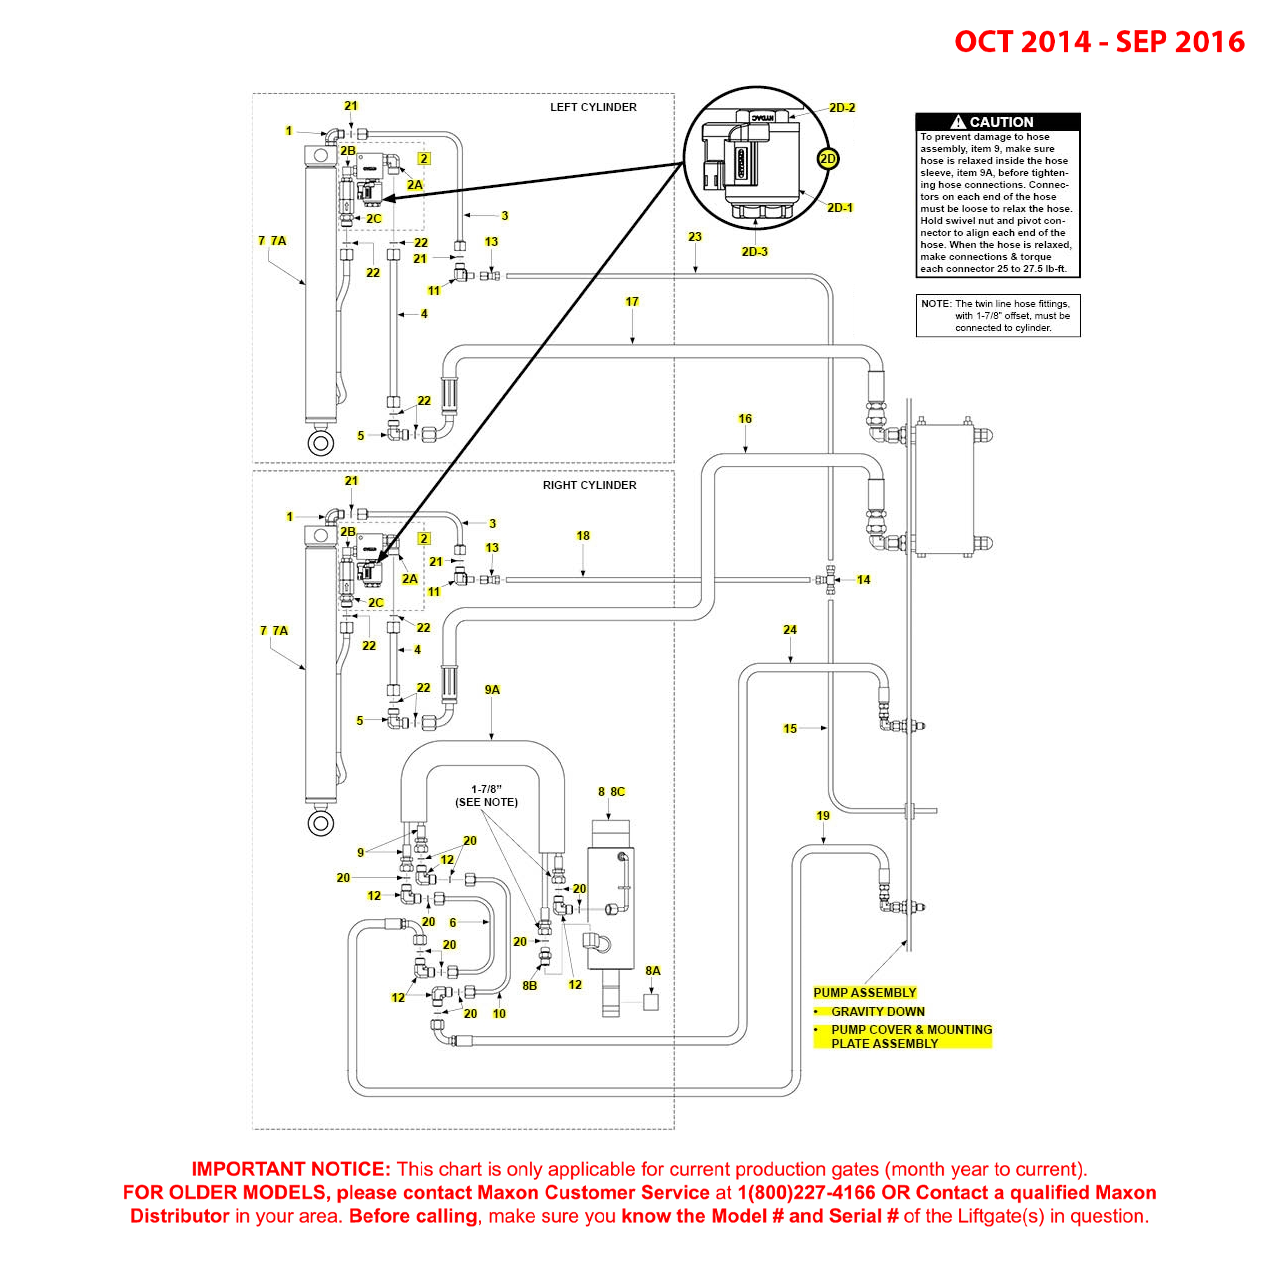 BMR (Oct 2014 - Sep 2016) Gravity Down Hydraulic Systems Diagram